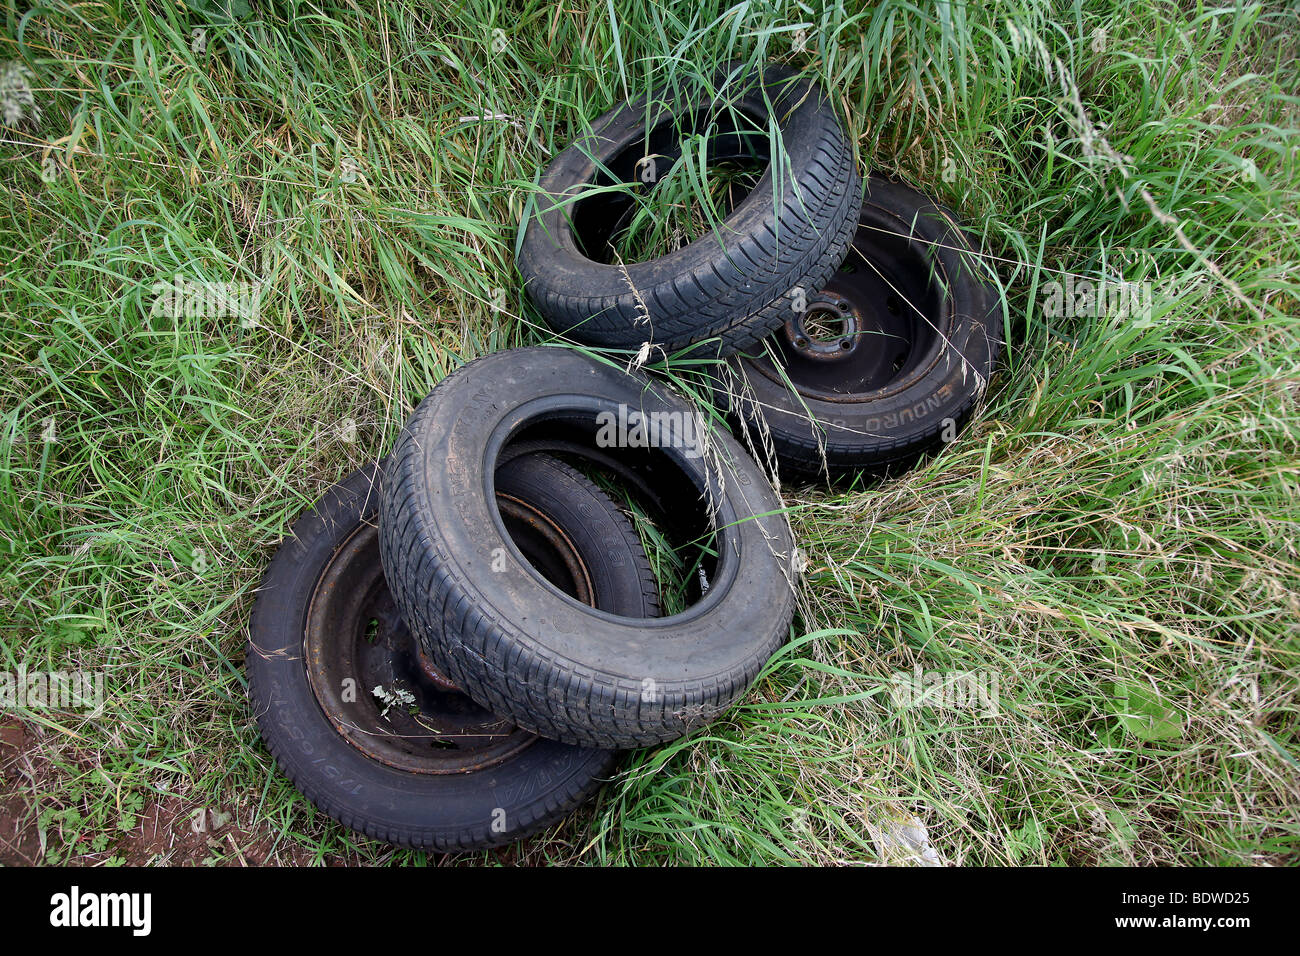 Picture by Mark Passmore. 05/09/2009. Discarded tyres spotted in a field near Tiverton, Devon. - Stock Image